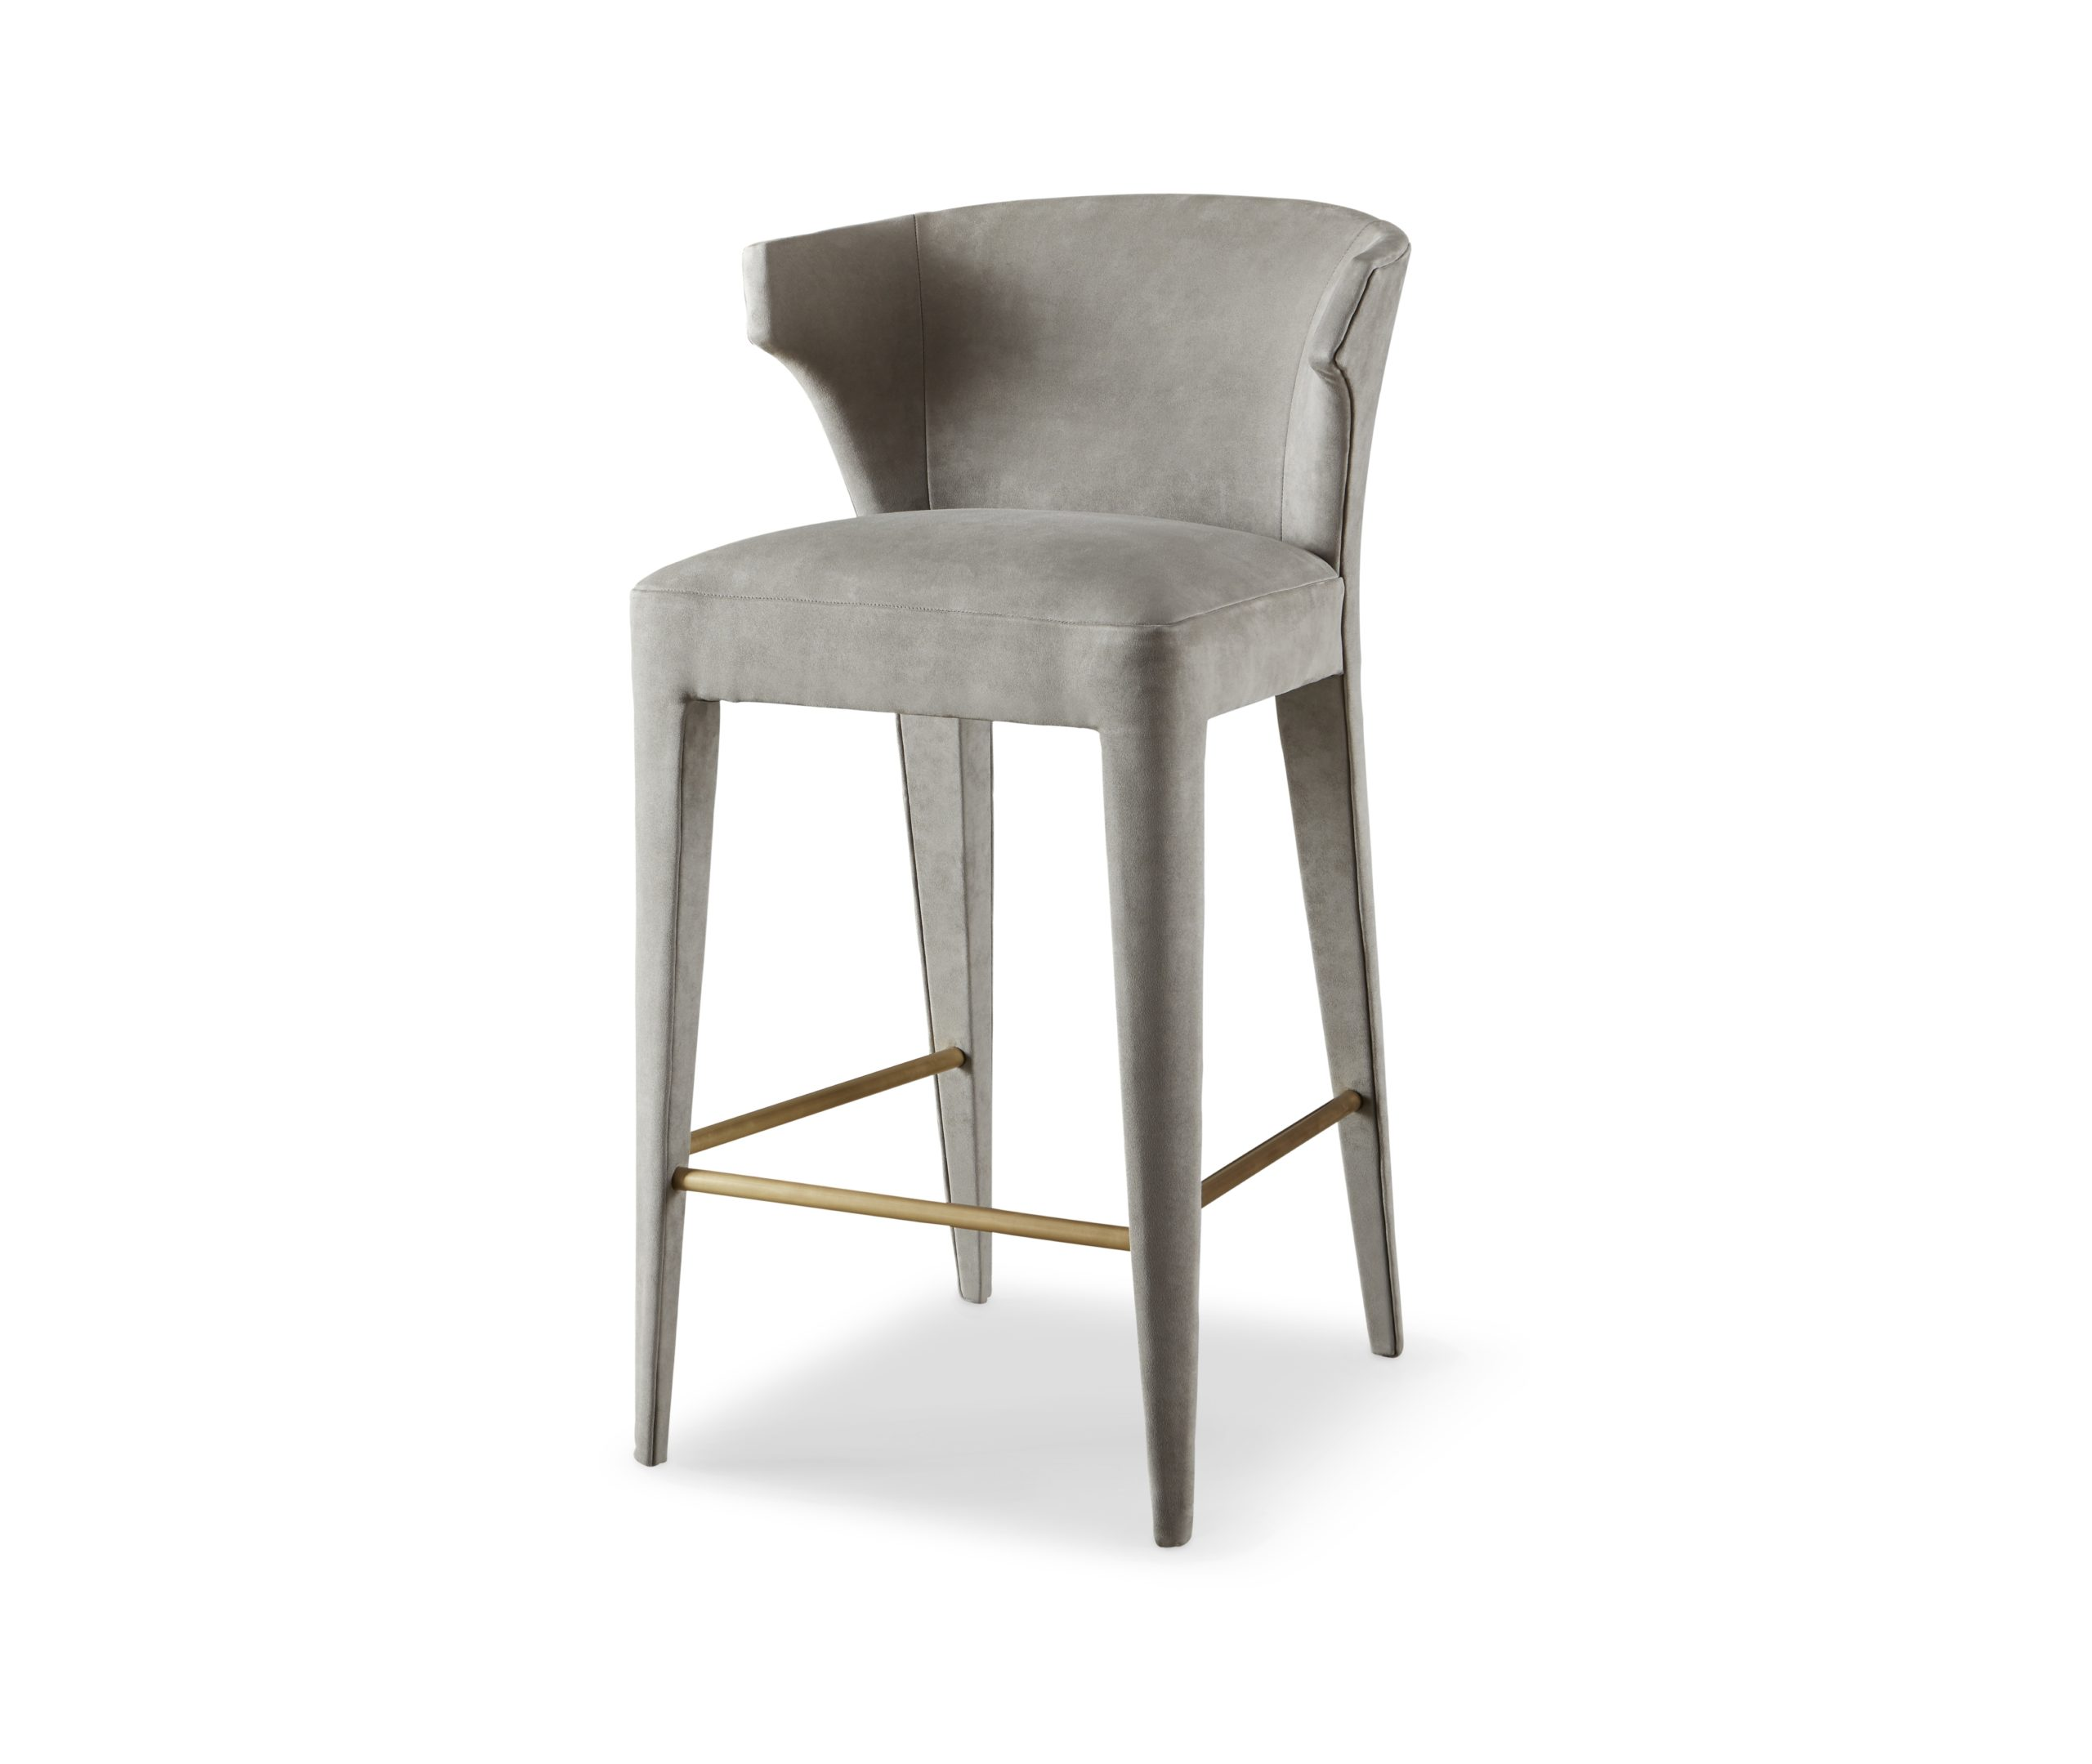 Baker_products_WNWN_lapel_barstool_BAA3049_FRONT_3QRT-scaled-2